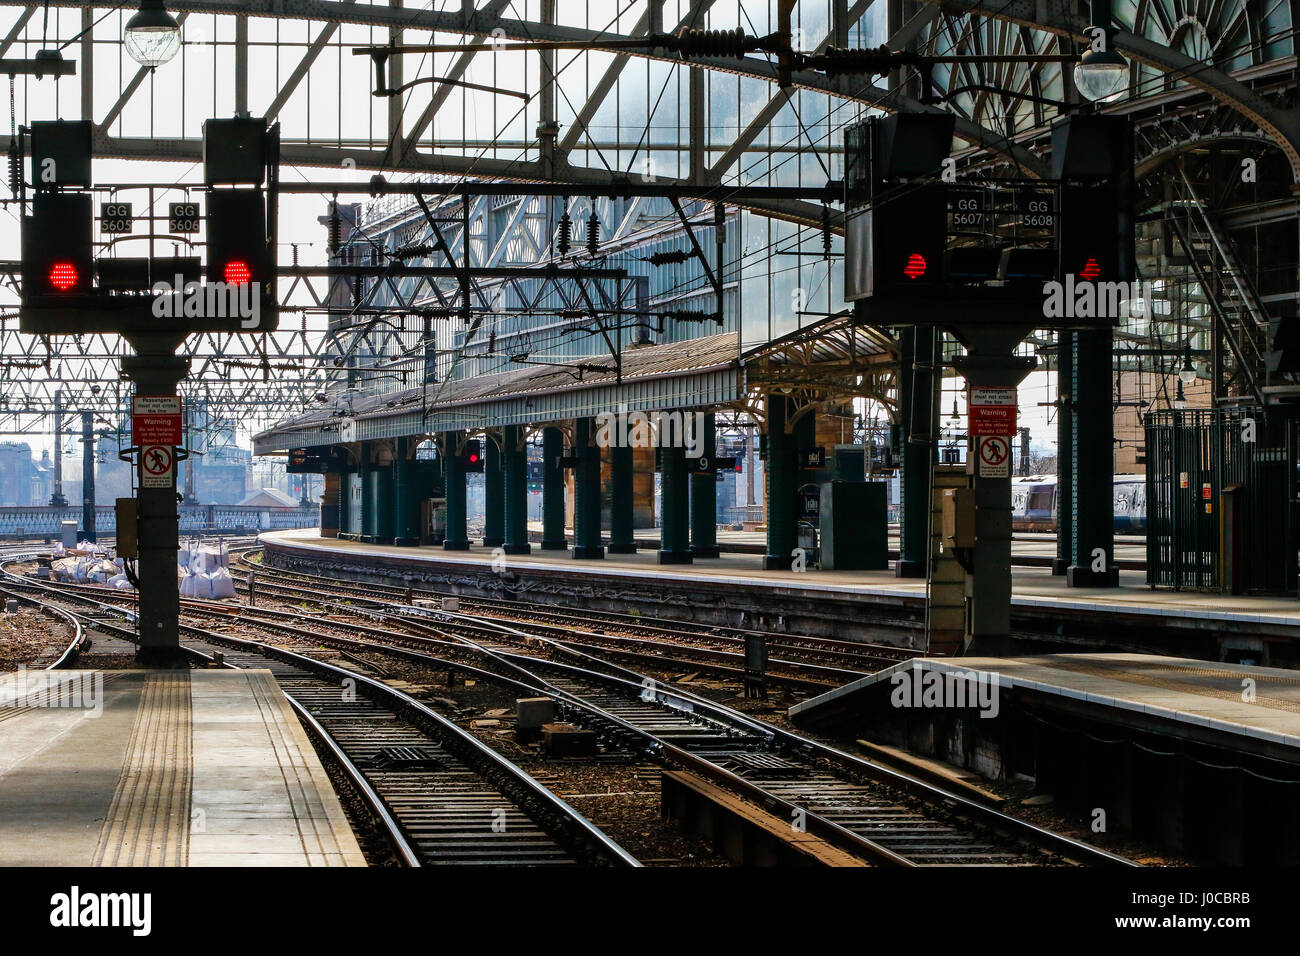 Glasgow central railway station with platforms and rail lines, also showing red light, Glasgow, Scotland, UK - Stock Image